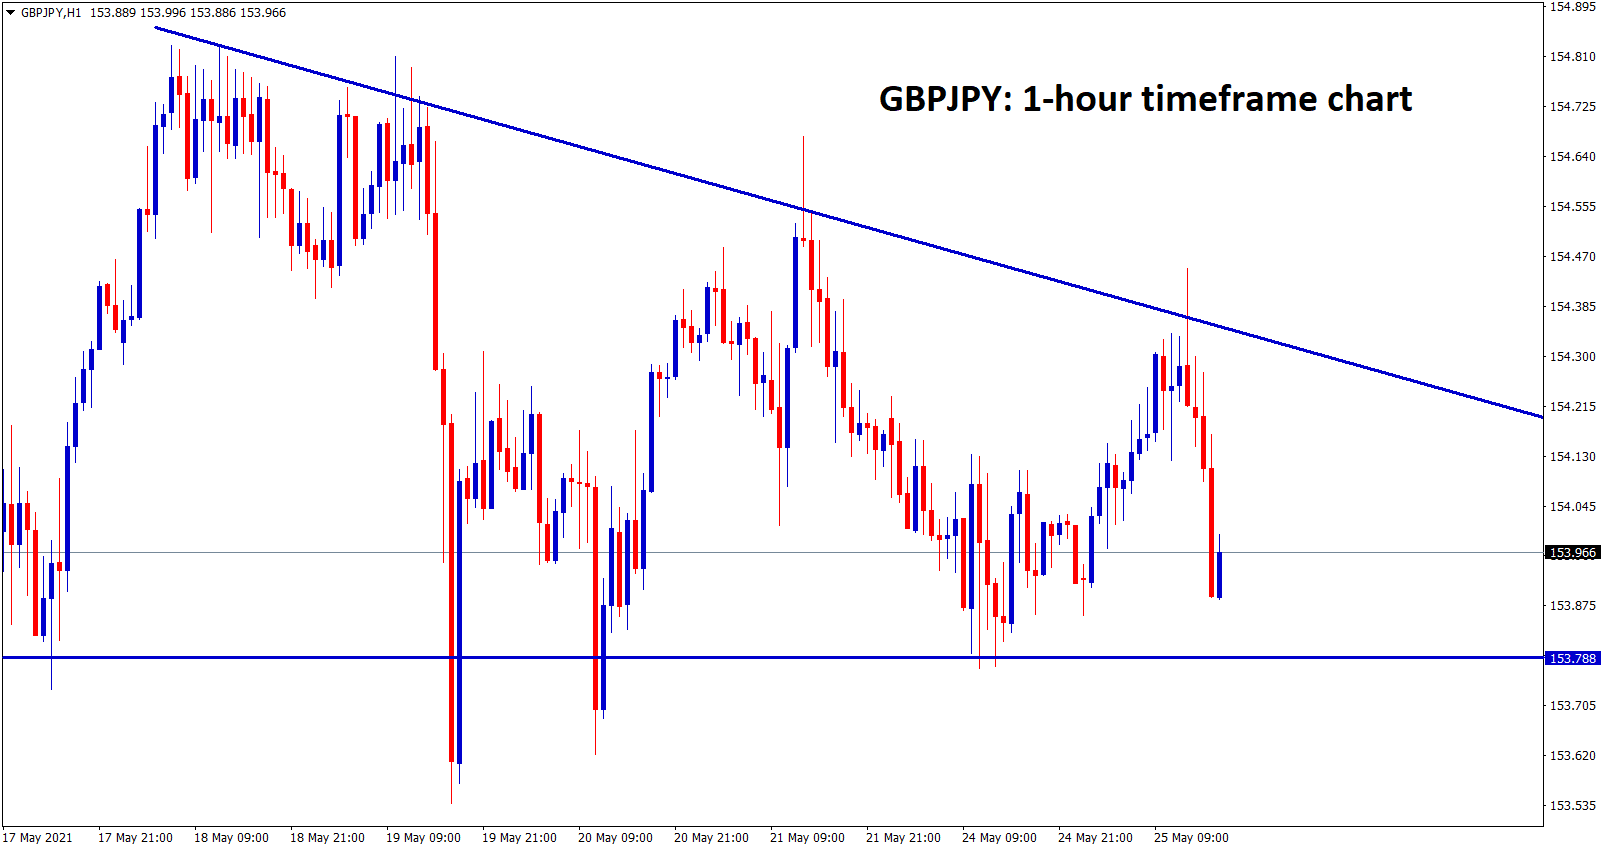 GBPJPY is moving in a descending triangle pattern